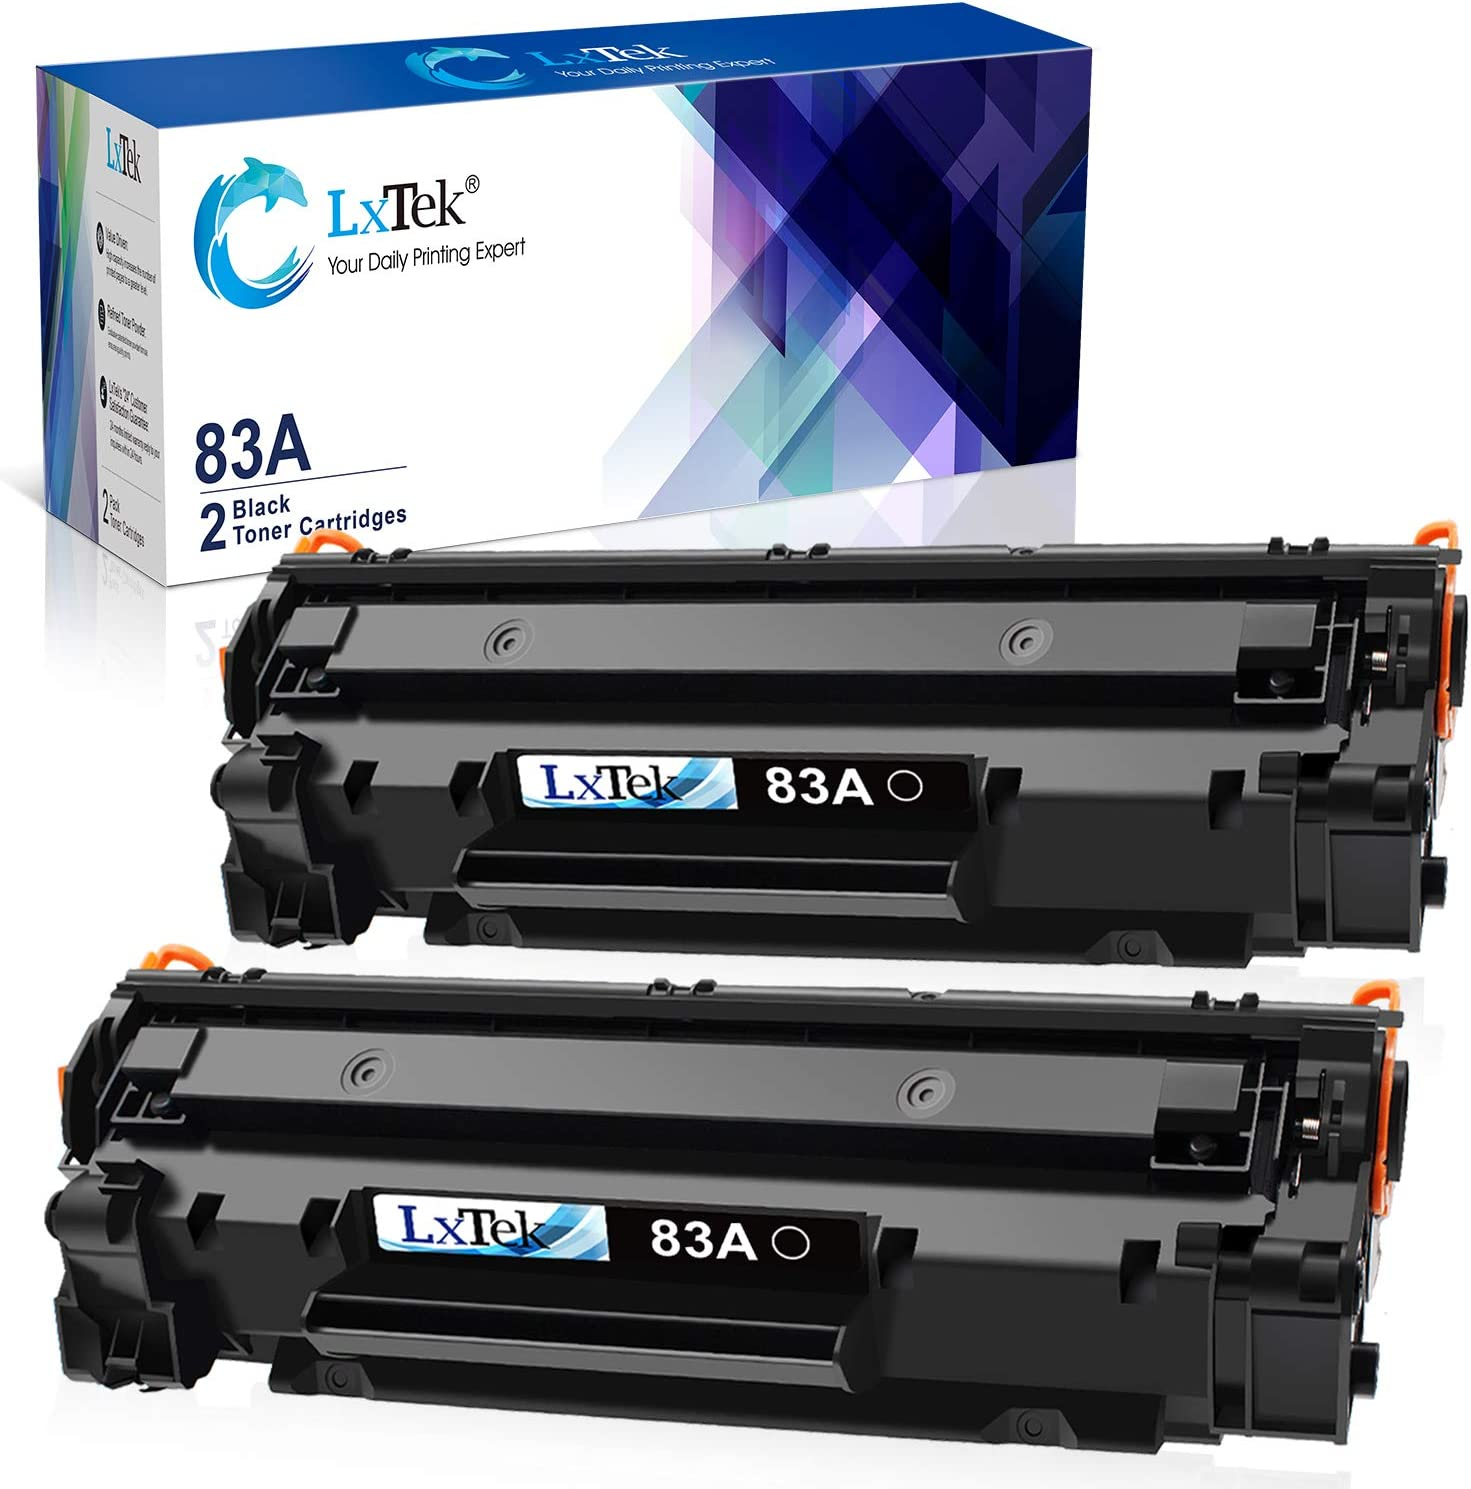 LxTek Compatible Toner Cartridge Replacement for HP 83A CF283A to use with Laserjet Pro MFP M125nw M201dw M225dw M201n M125a M127fn M127fw, 2 Black